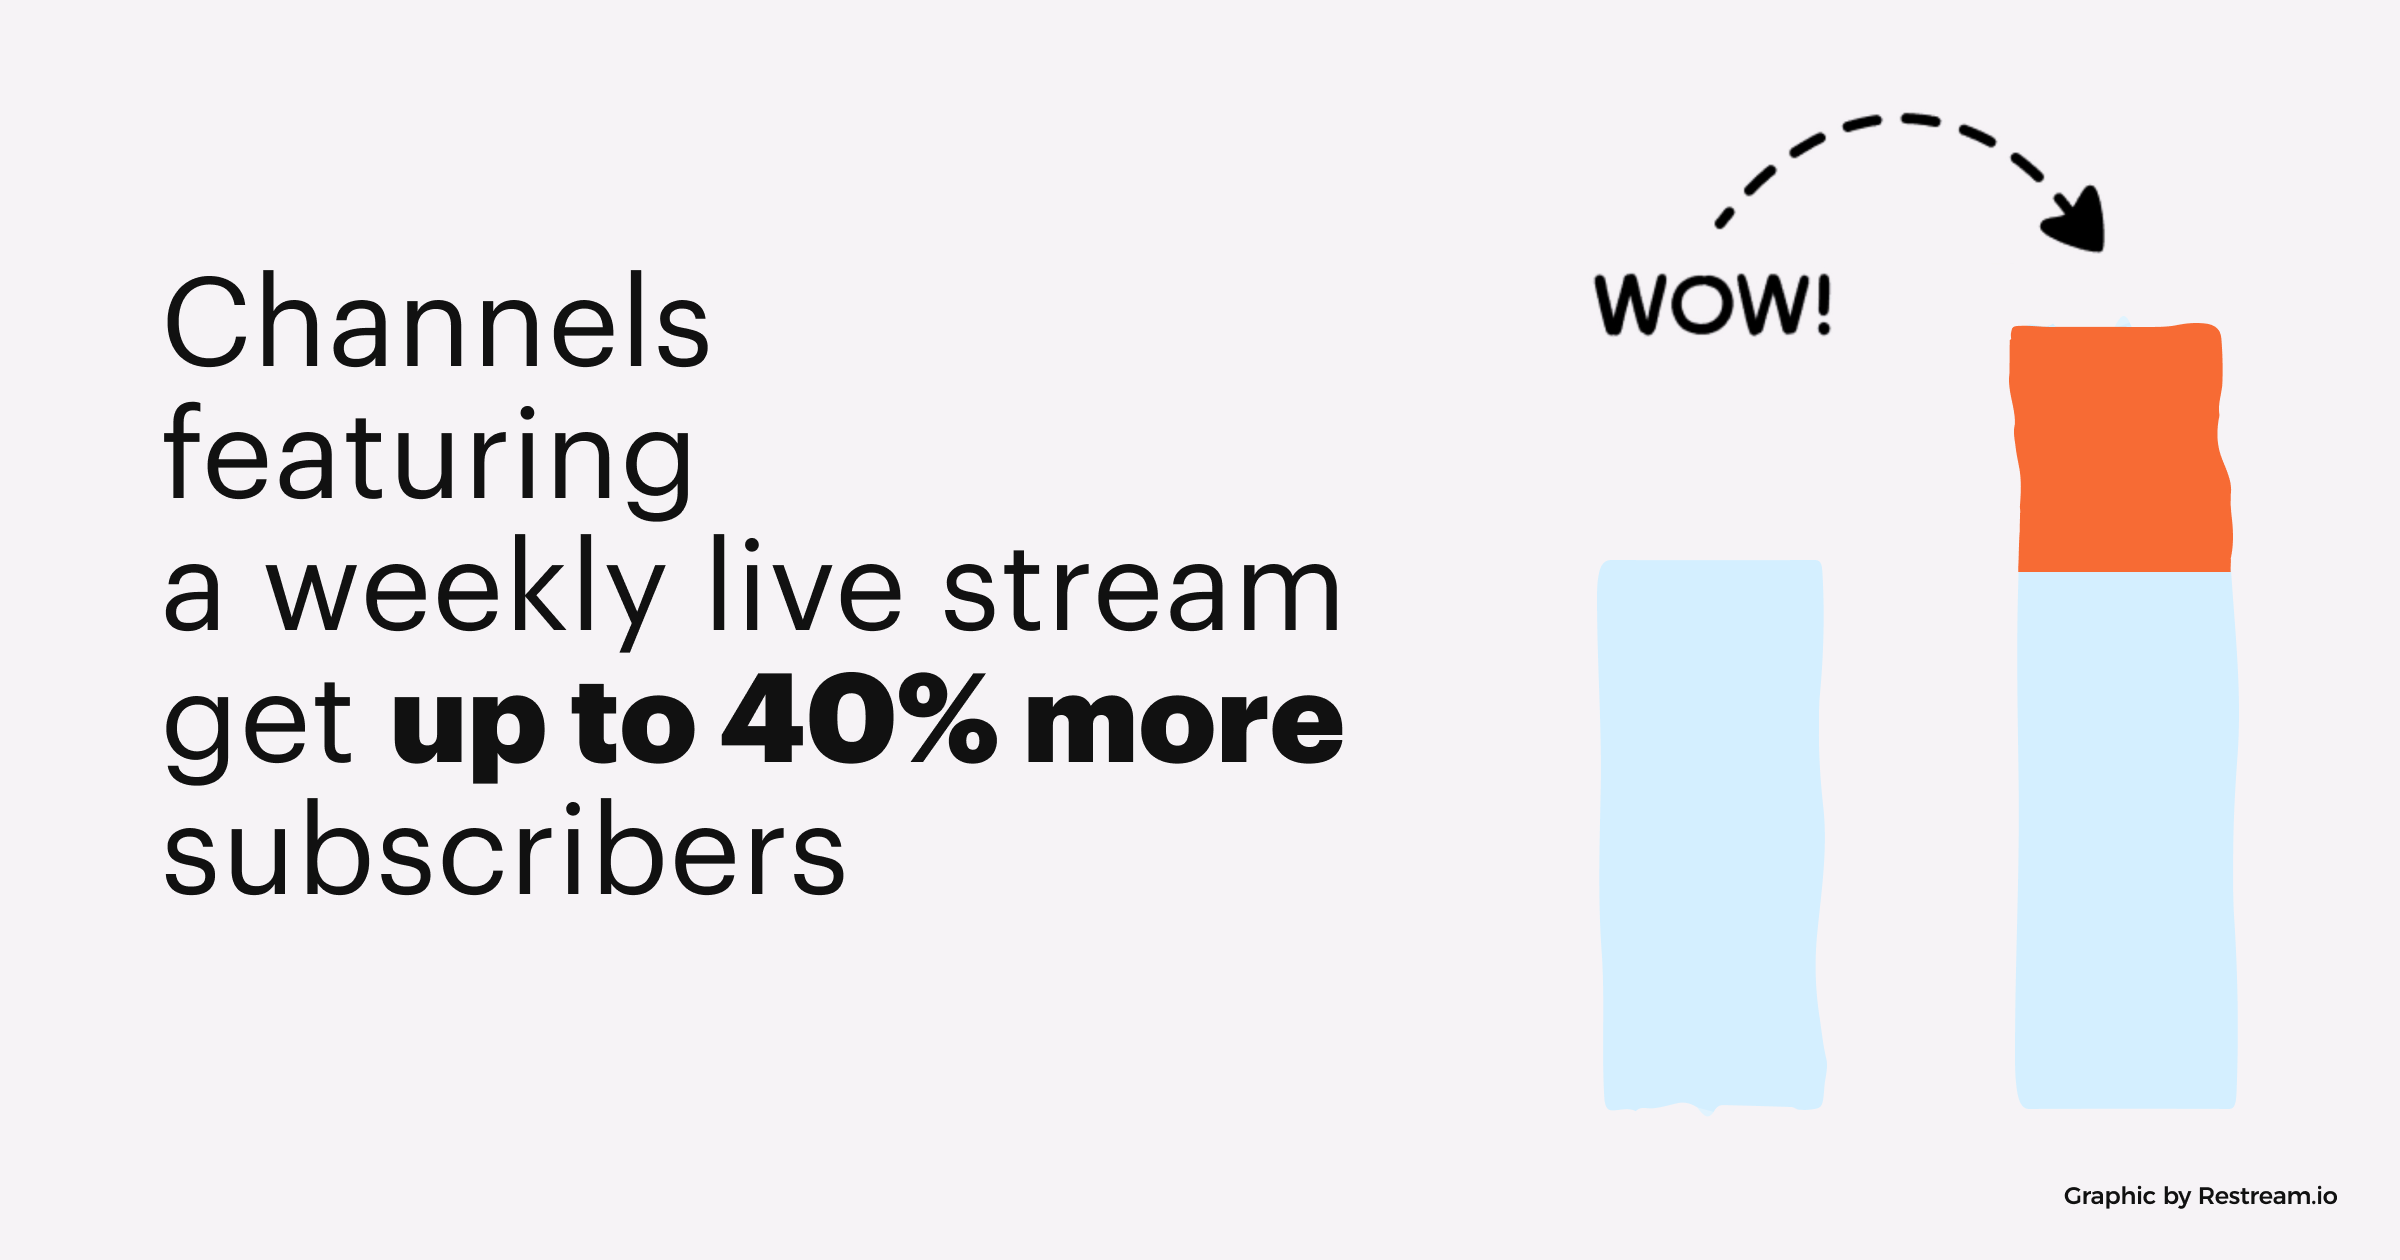 Channels featuring a weekly live stream get up to 40% more subscribers